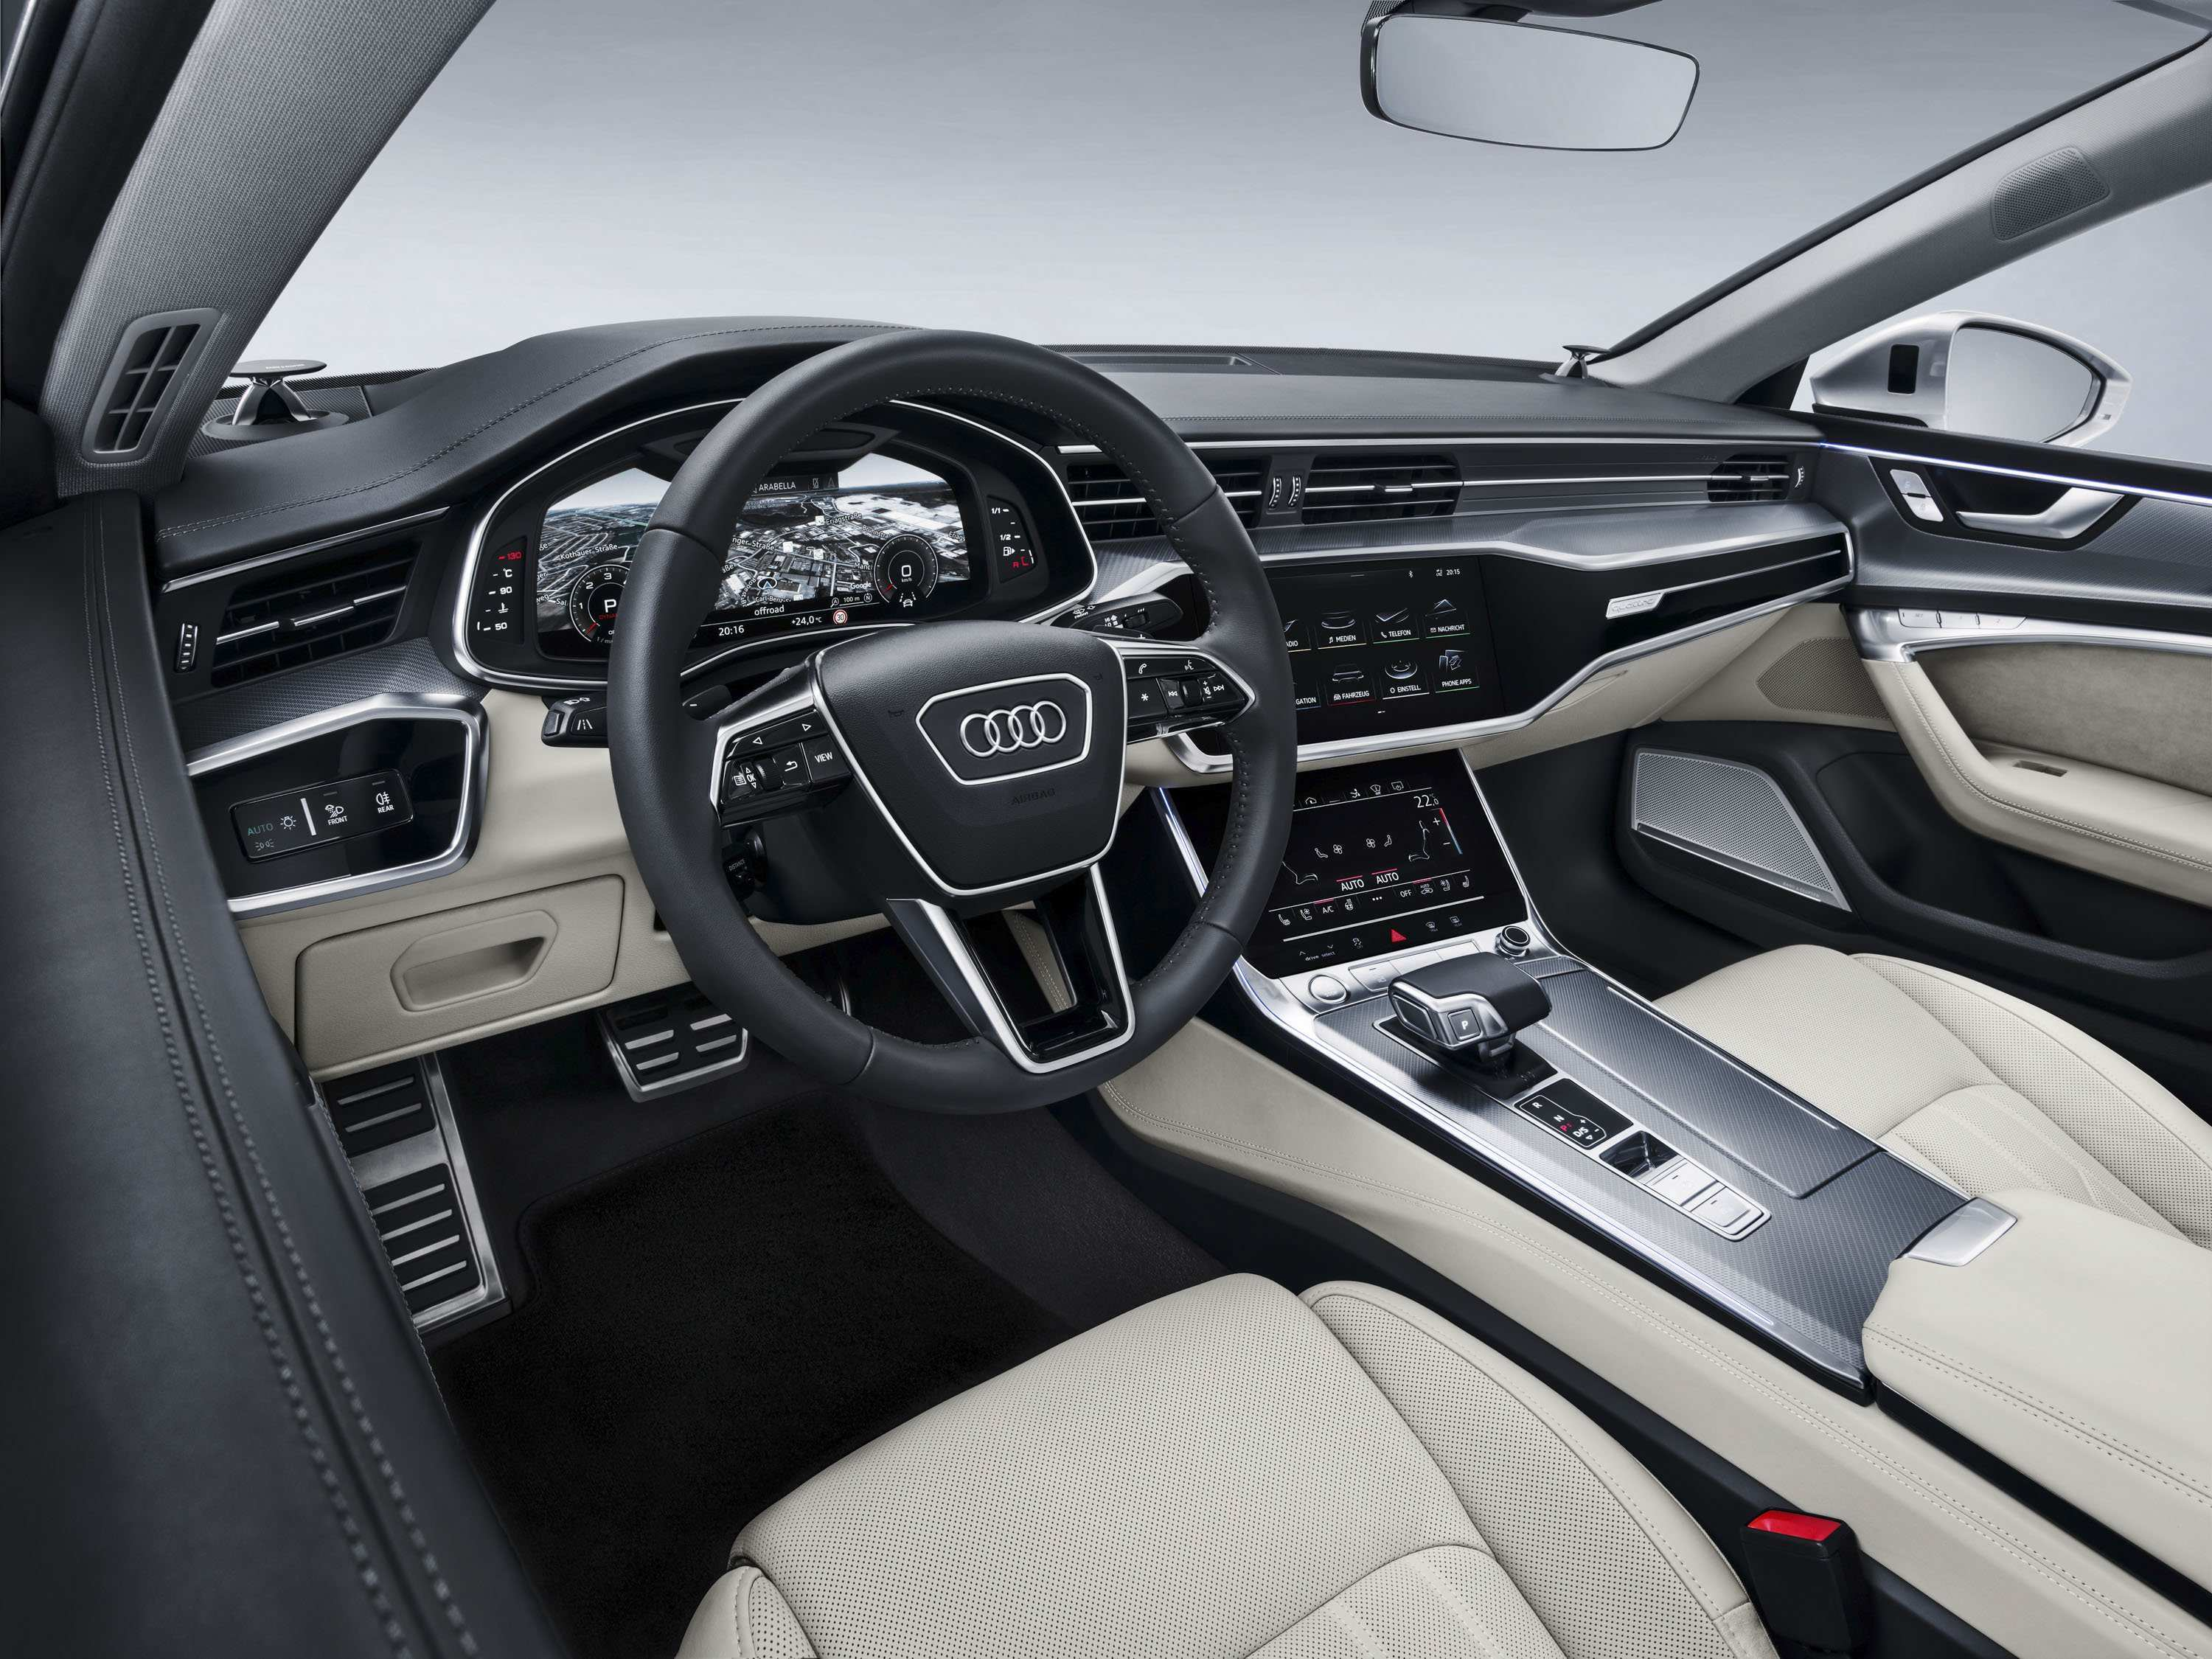 80 New 2019 Audi A7 Release Date Spy Shoot with 2019 Audi A7 Release Date